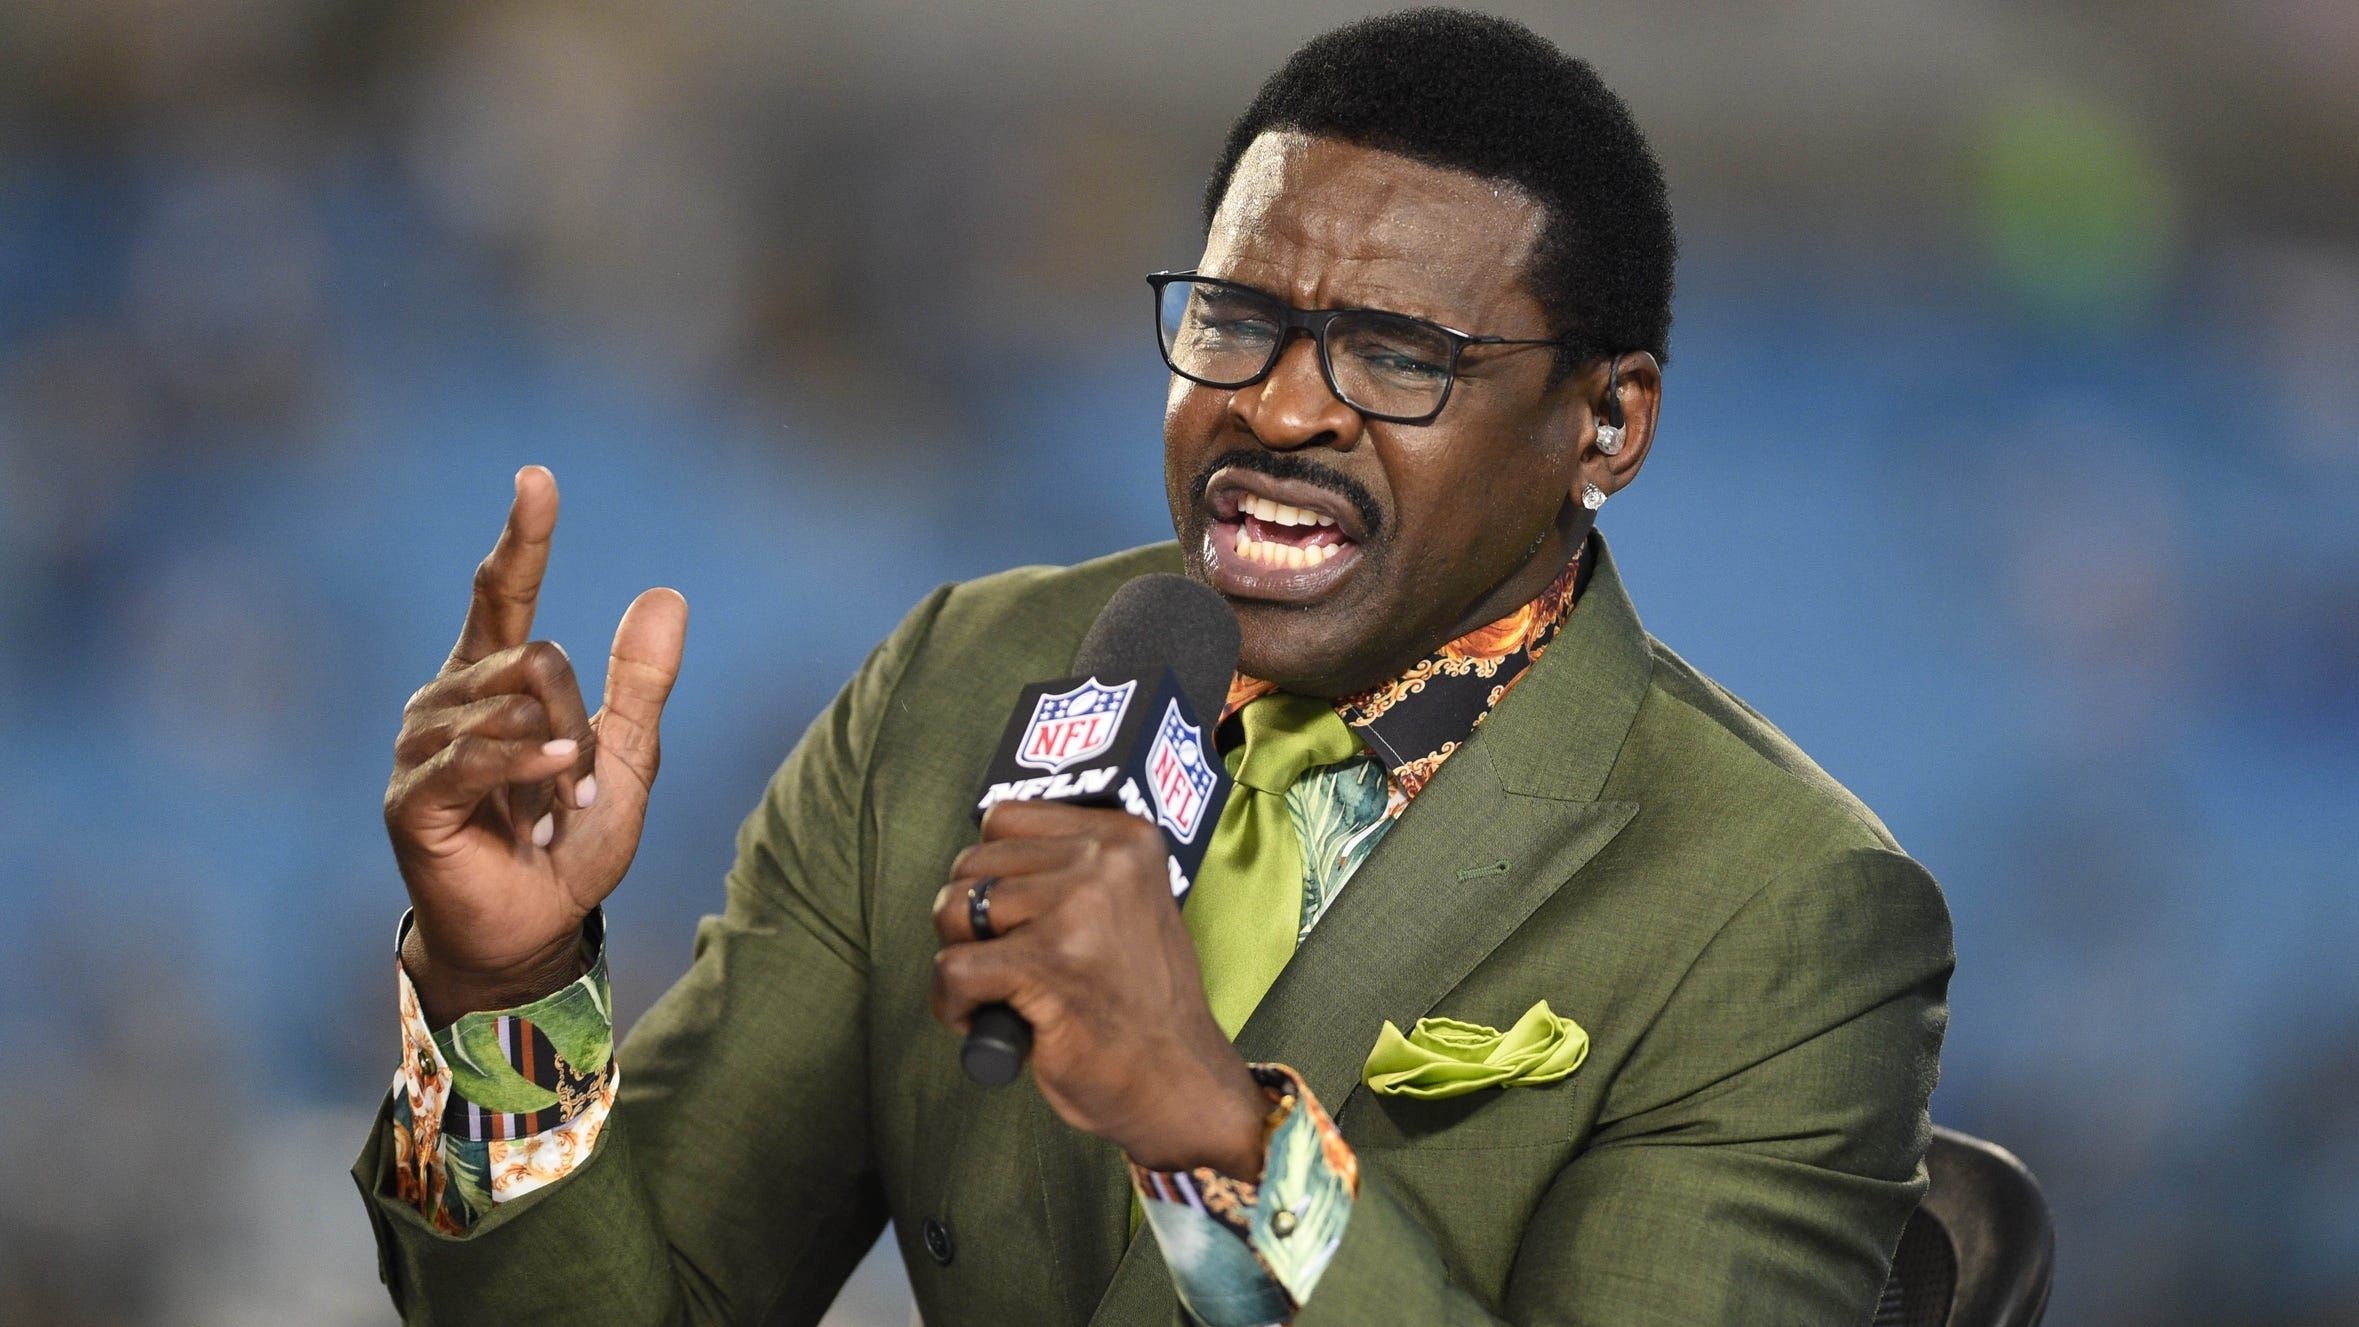 Former Cowboys WR Michael Irvin clarifies his Covid-19 vaccine comments